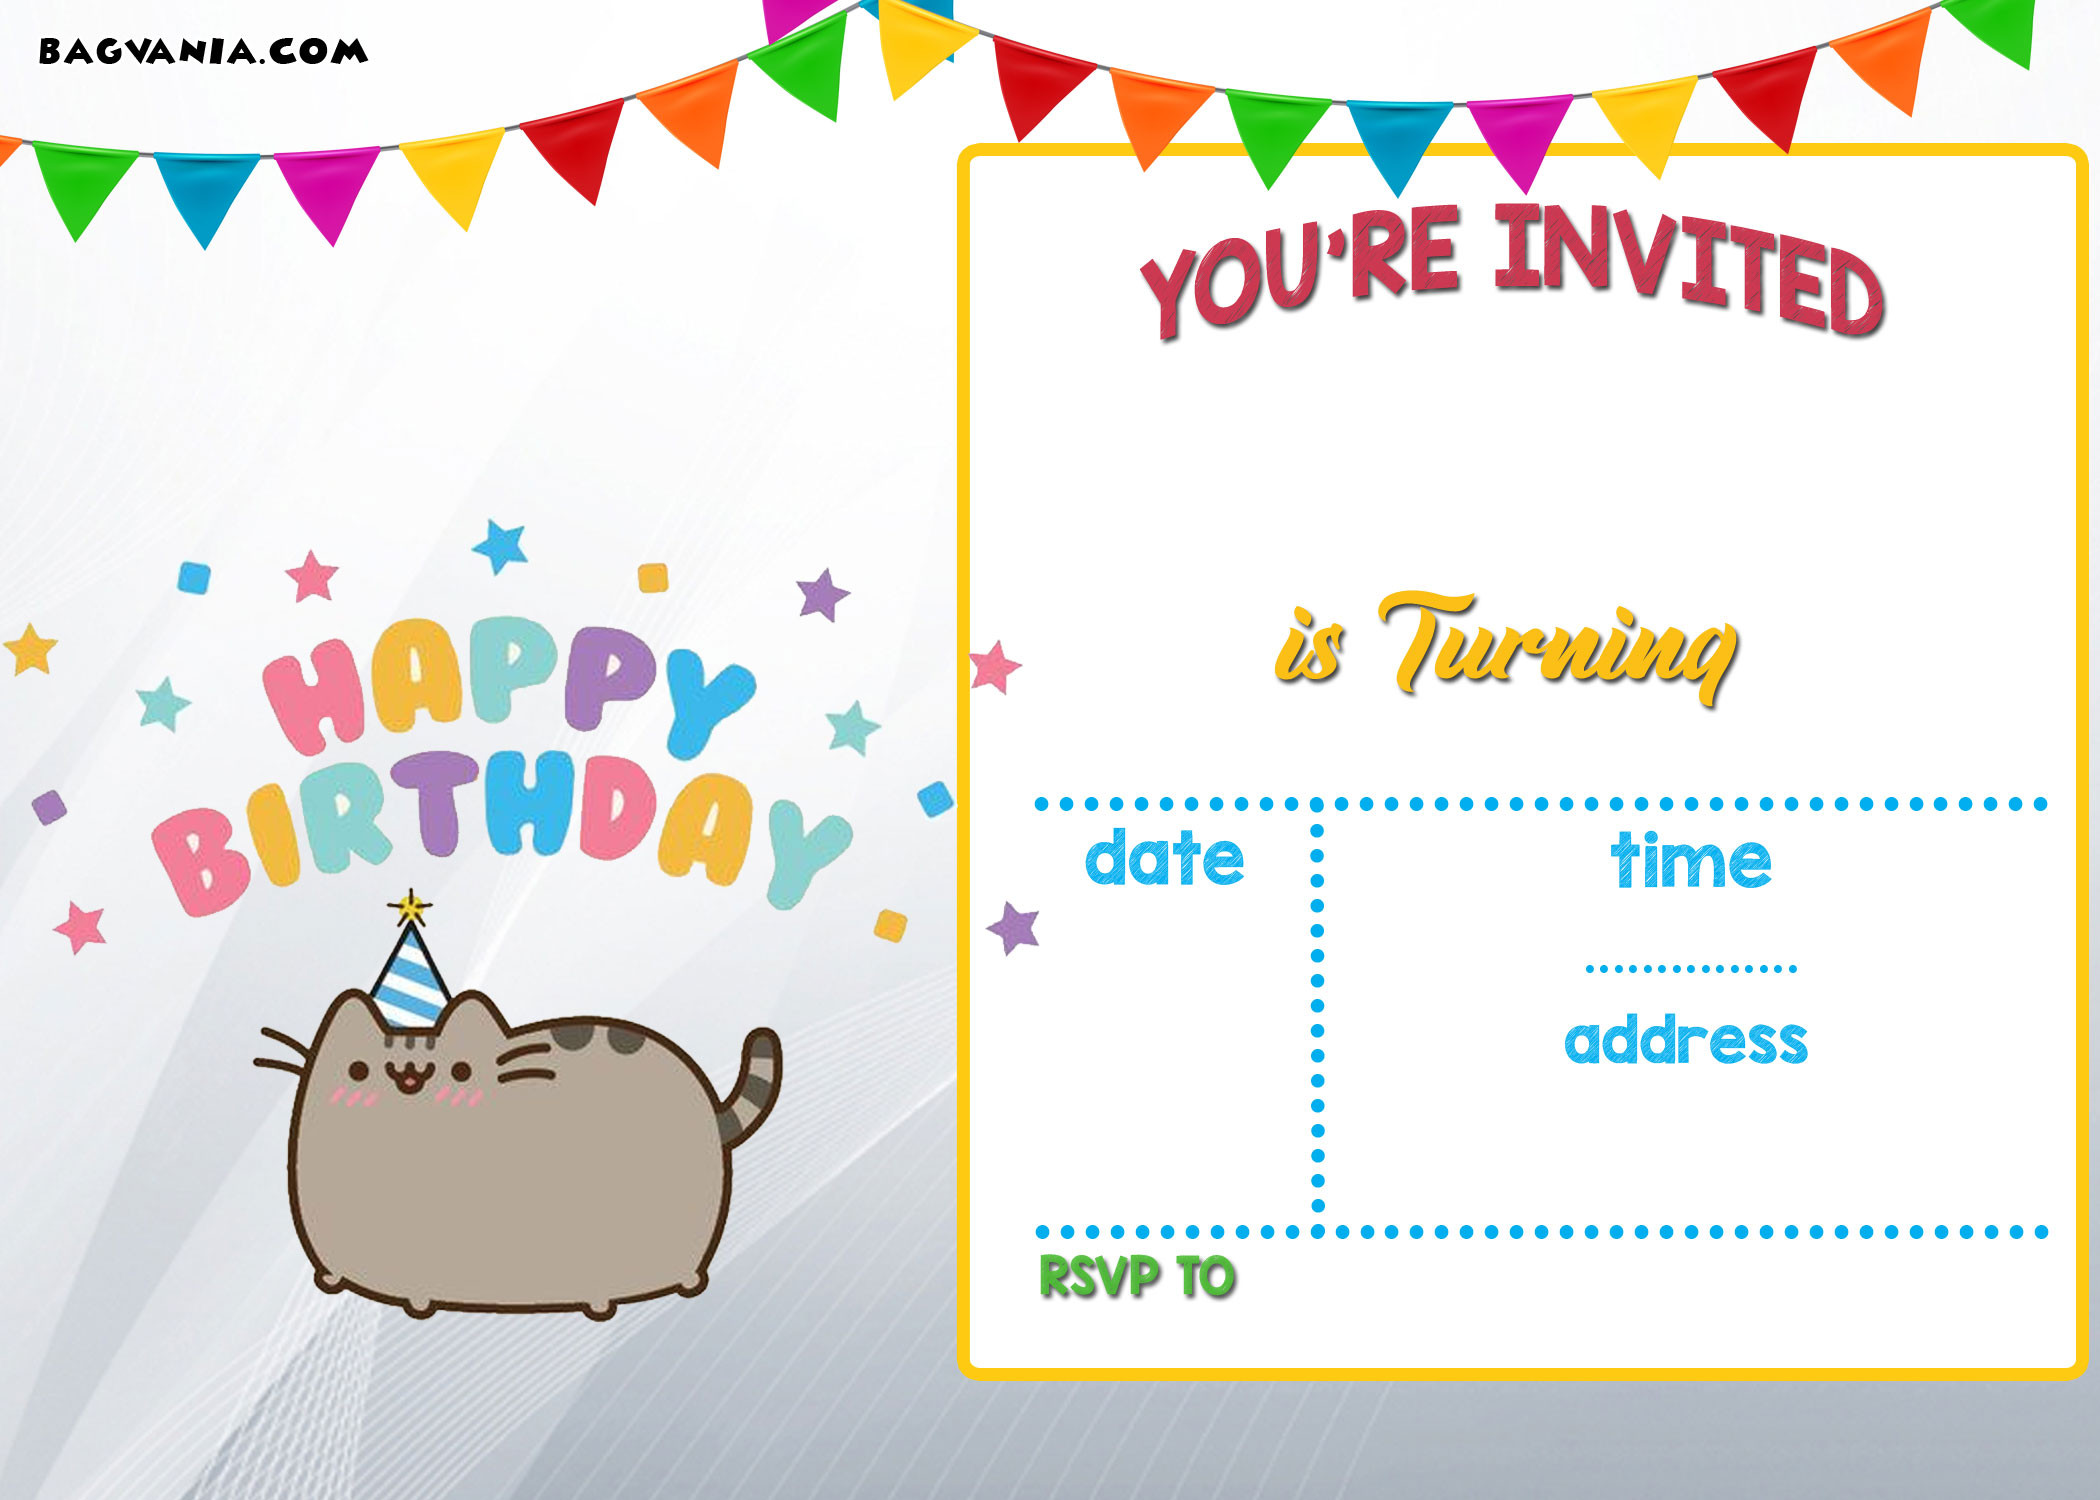 Toddler Birthday Invitations  Free Printable Kids Birthday Invitations – Bagvania FREE